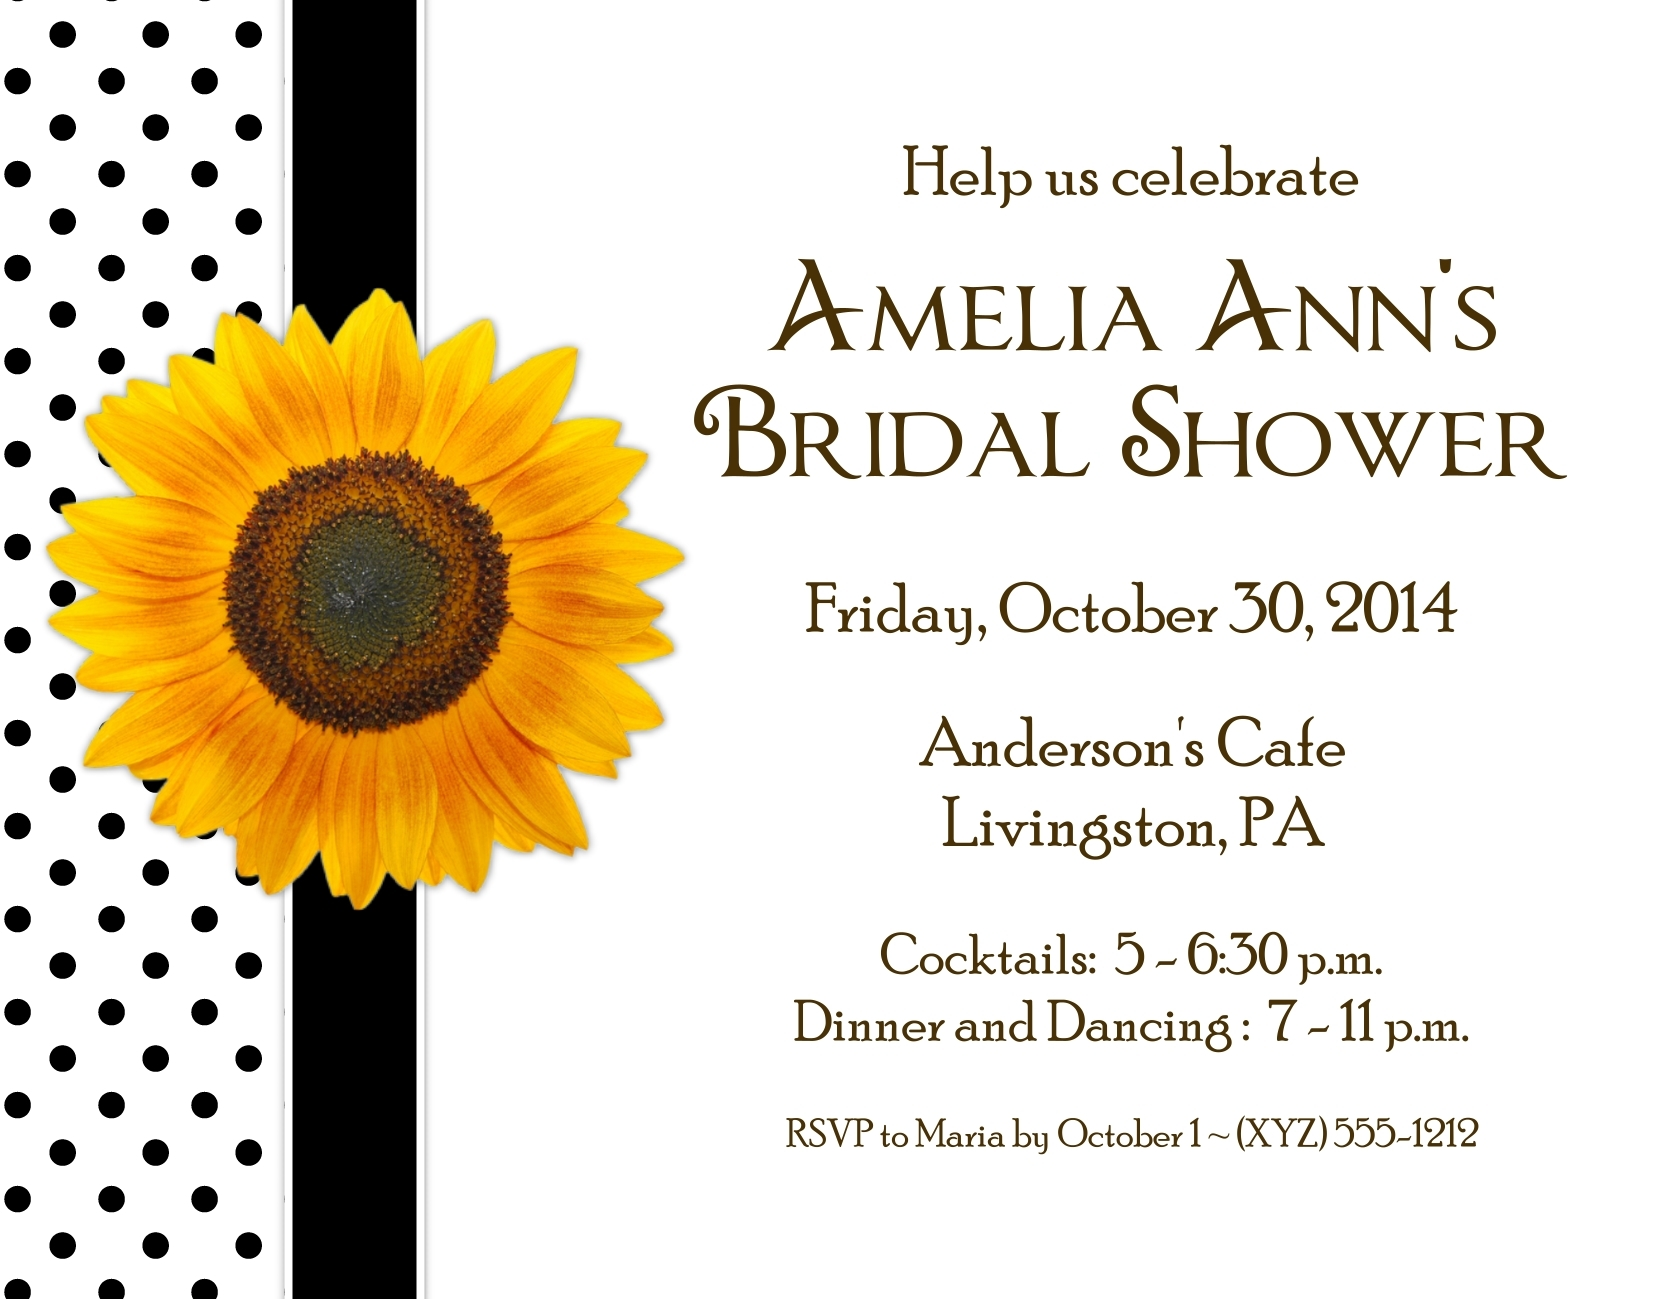 Sunflower Party Invitations with Envelopes 138-SUNFLOWER